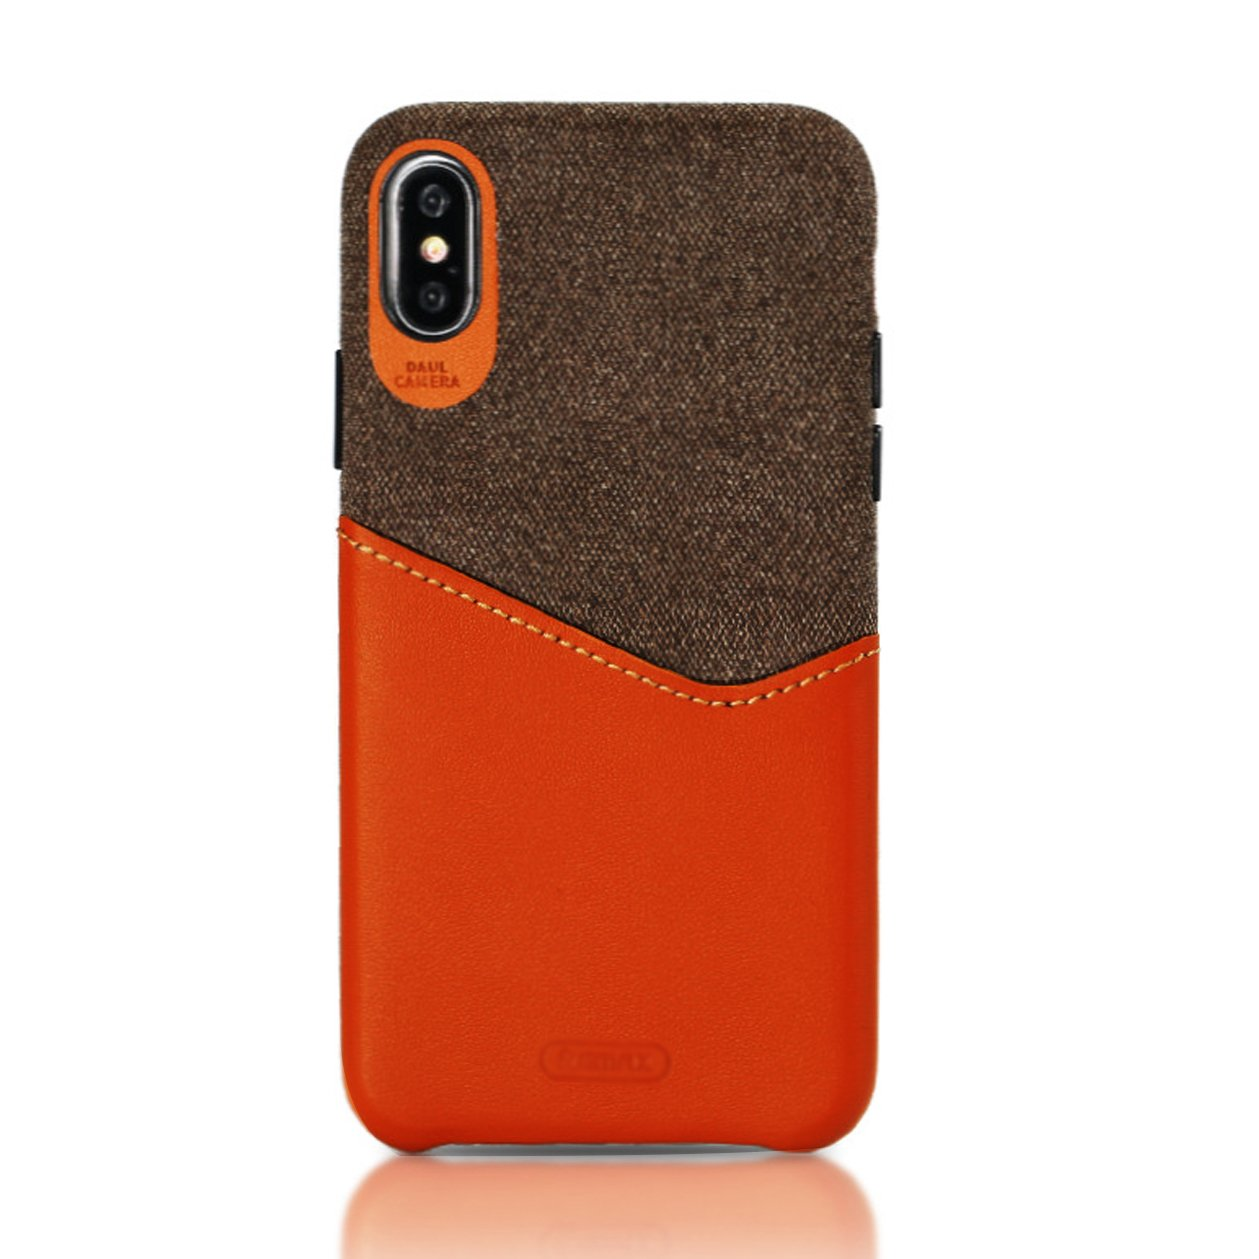 Lunazoe iPhone X case and Card Slot Leather Slim Back Cover Creative Protective Cell L001y/iphoneX/black/h